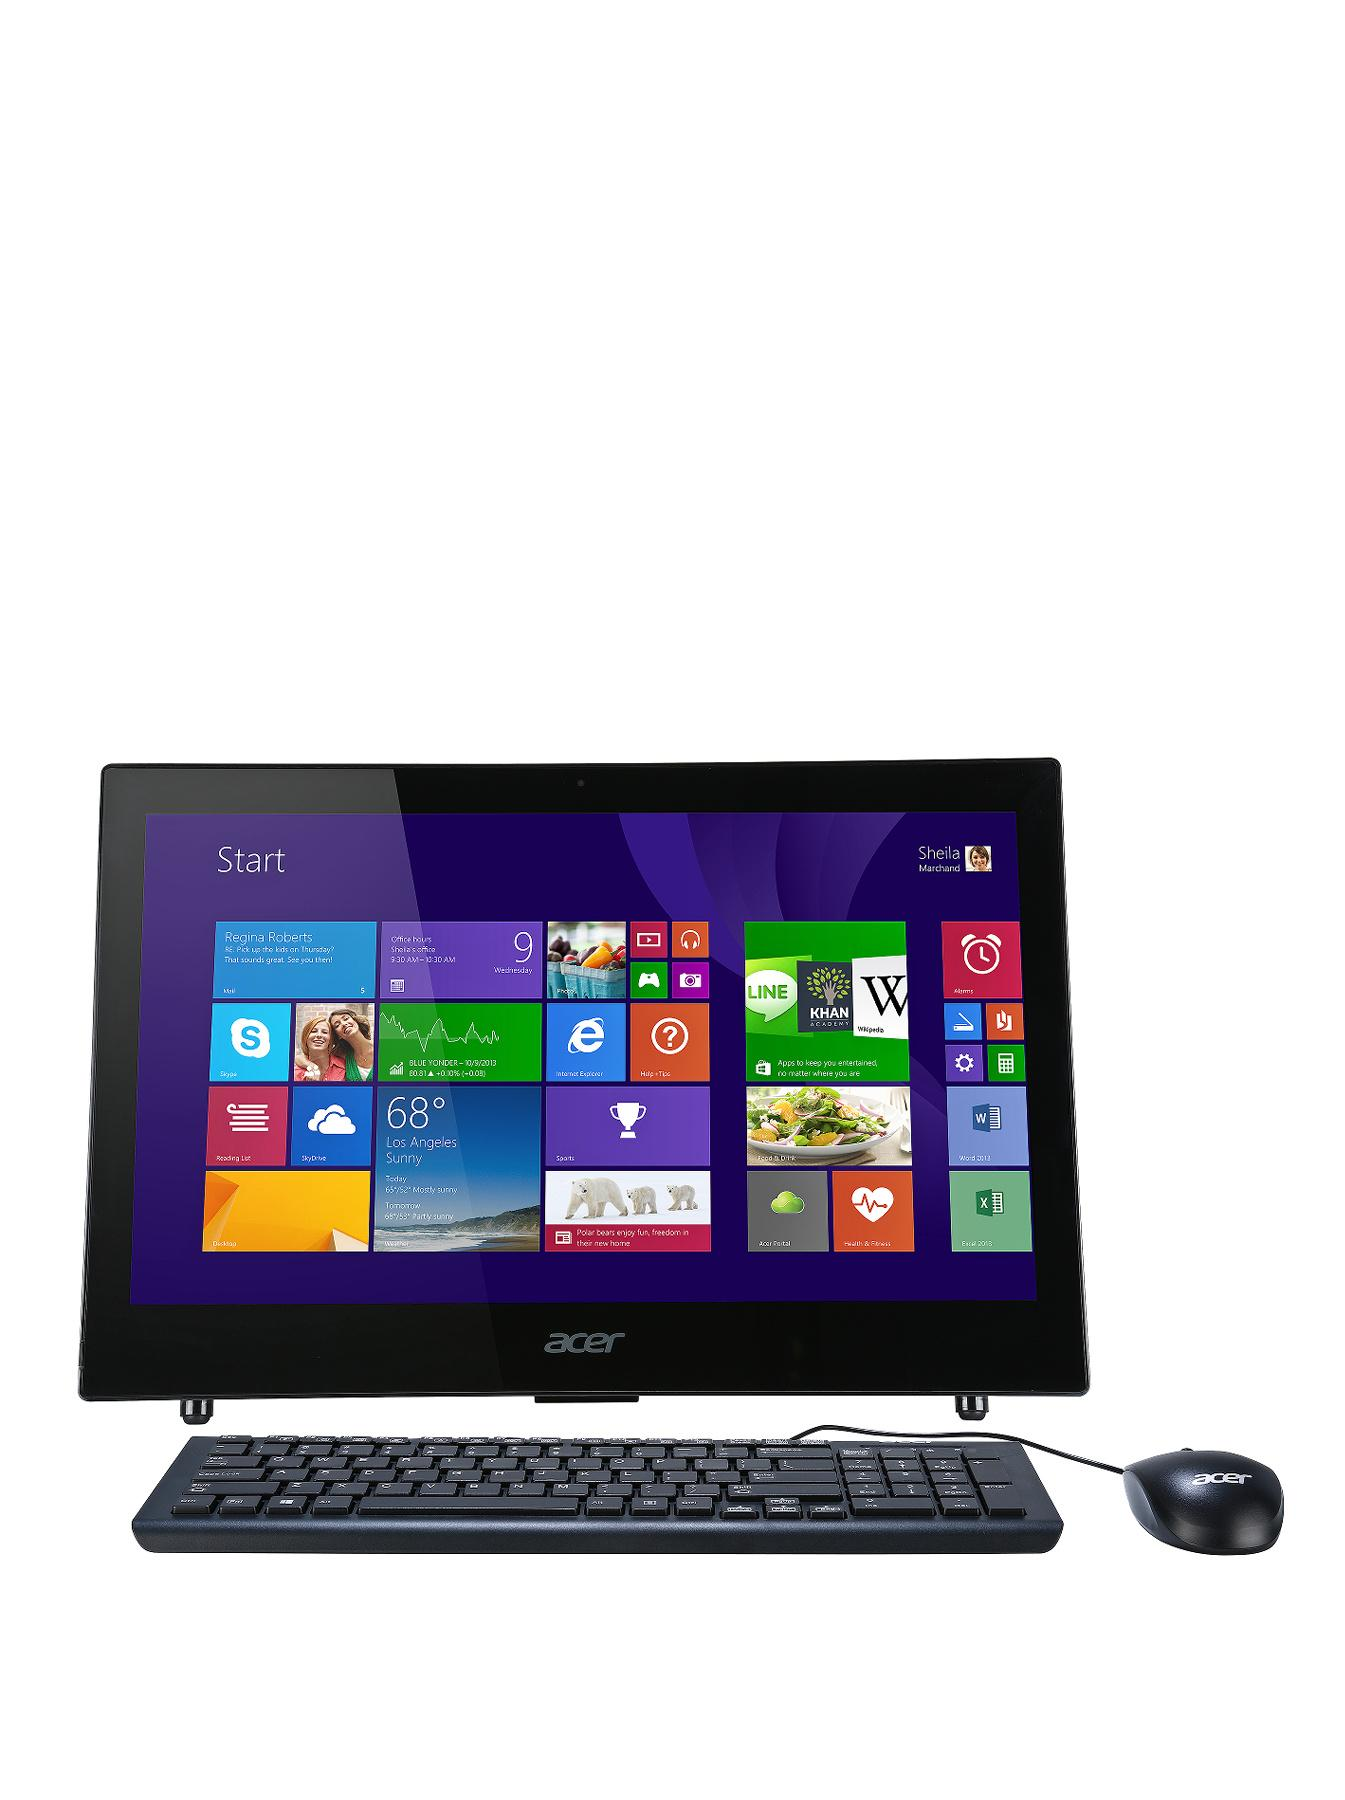 Acer Aspire Z1-601 Intel Celeron Processor, 4Gb RAM, 500Gb Hard Drive, Wi-Fi, 18.5 inch, All In One Desktop - Black